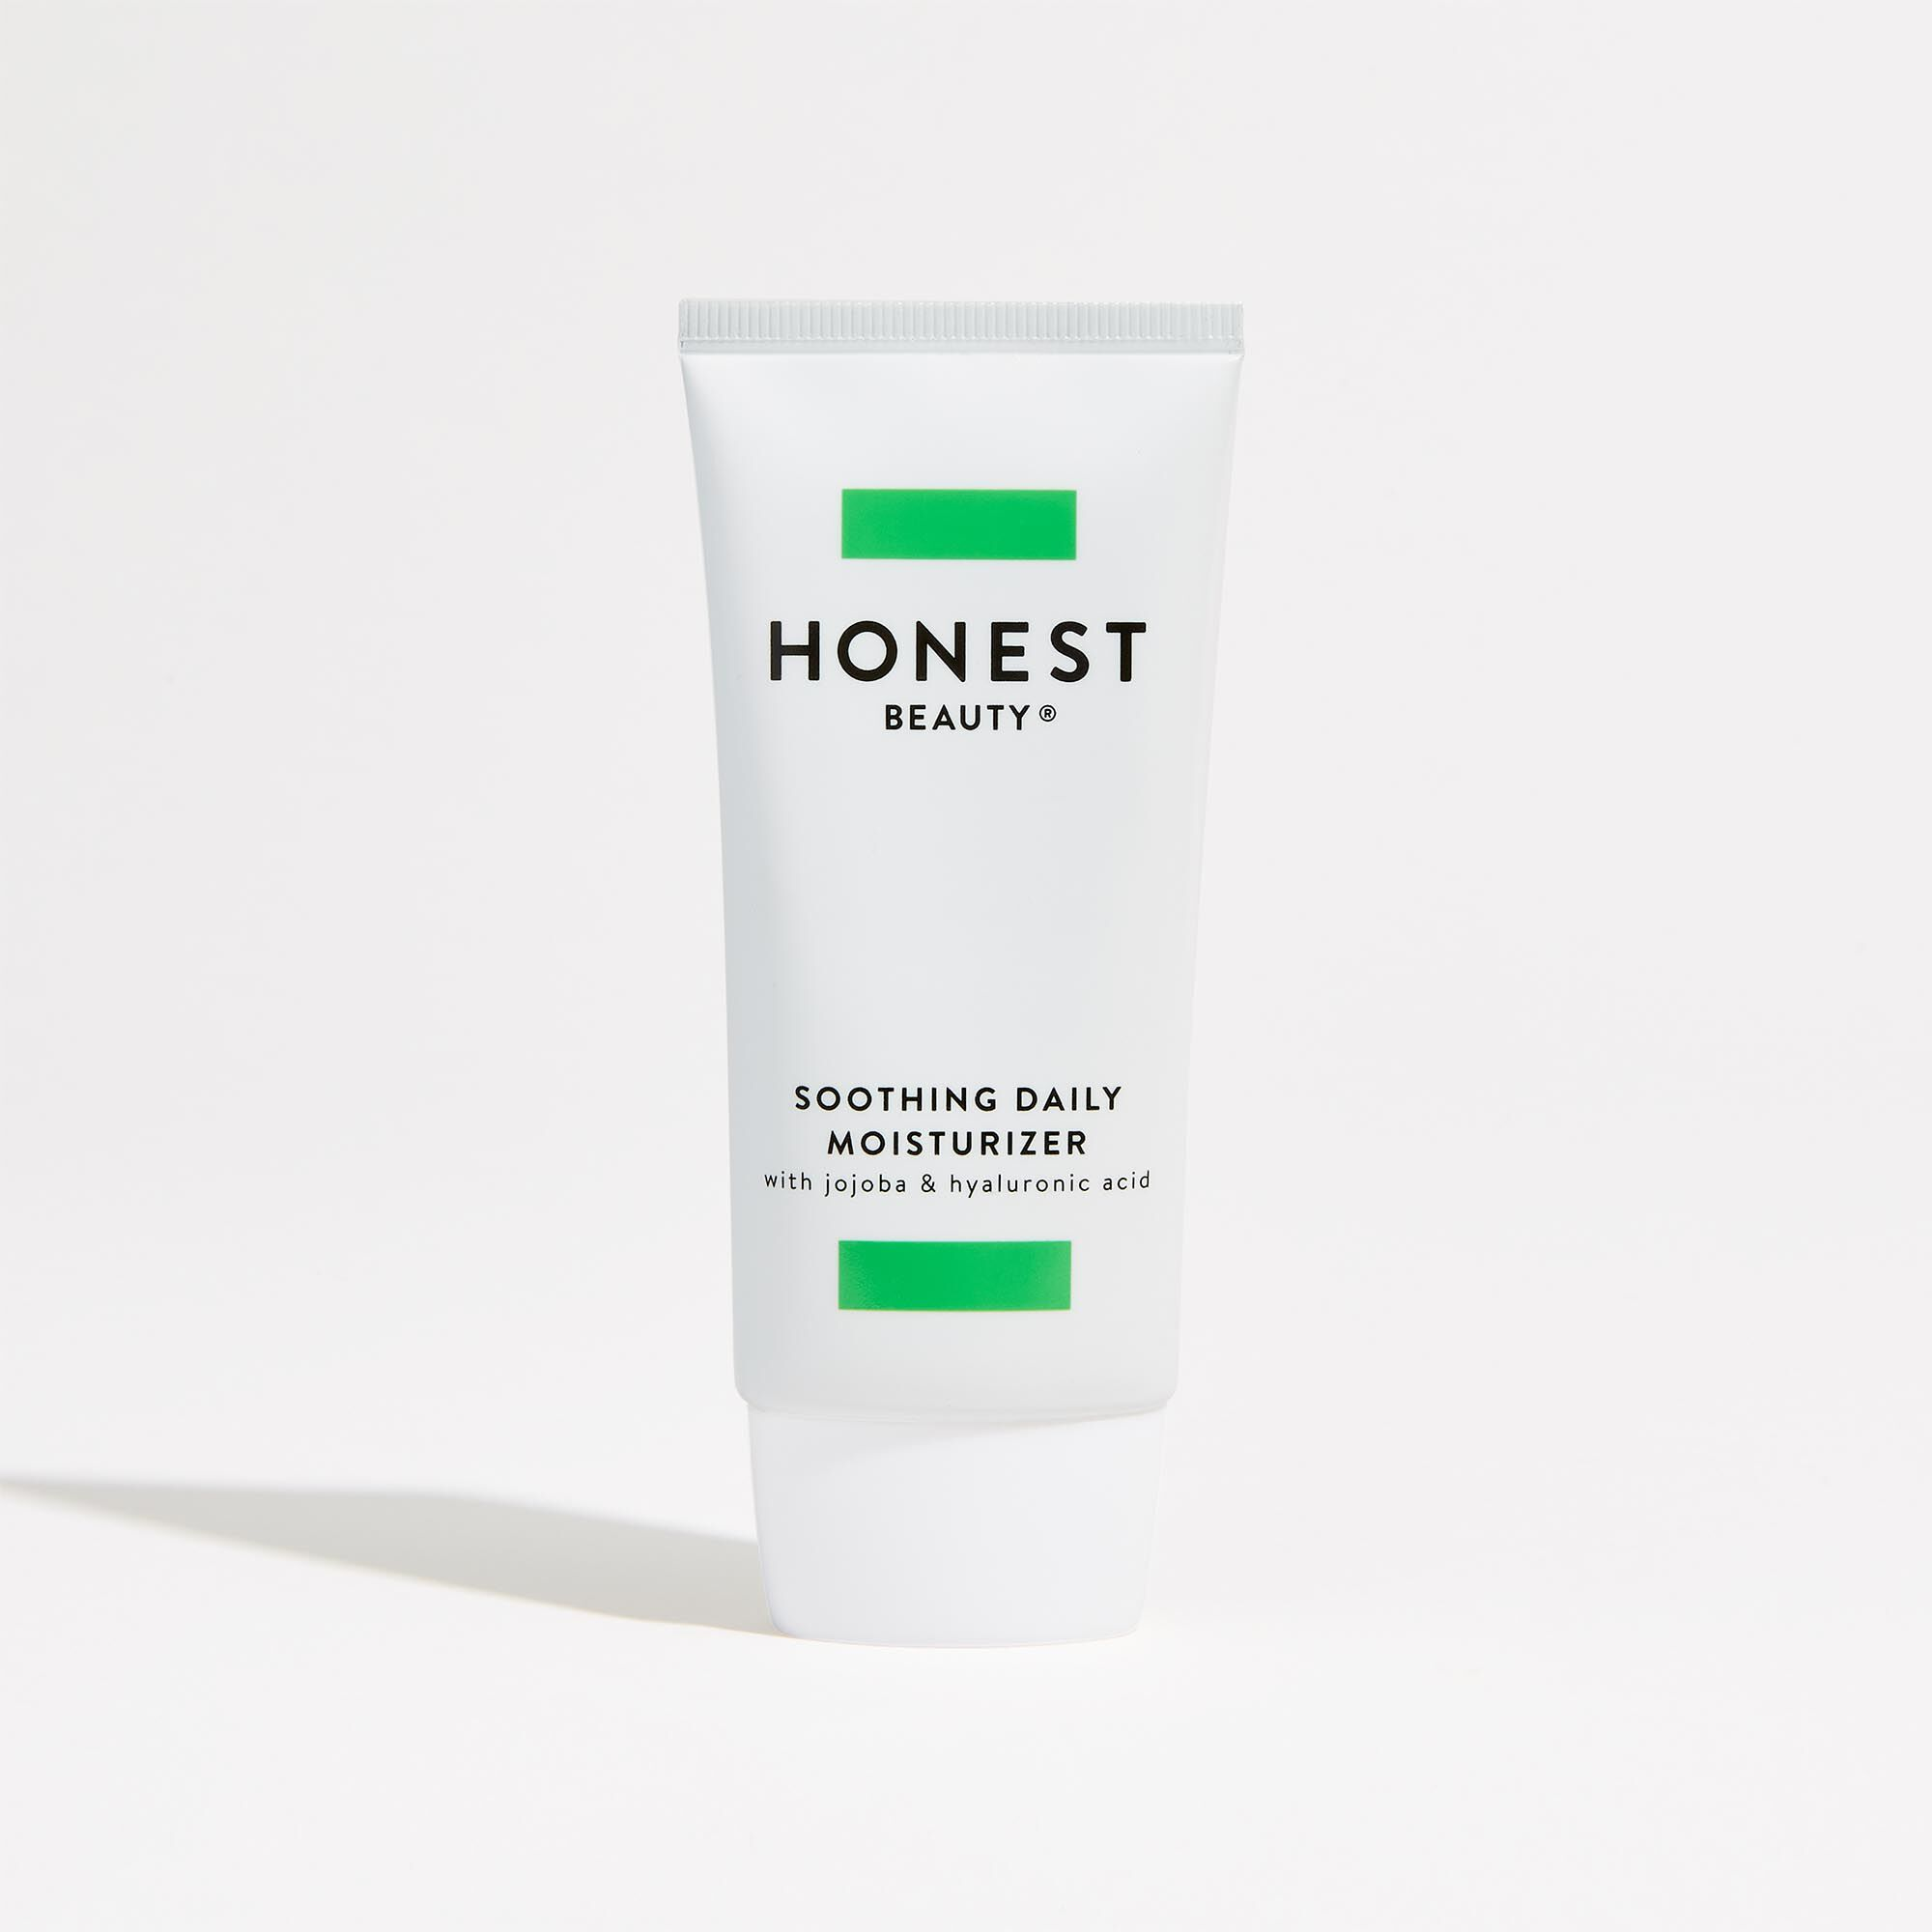 Soothing Daily Moisturizer, front of package